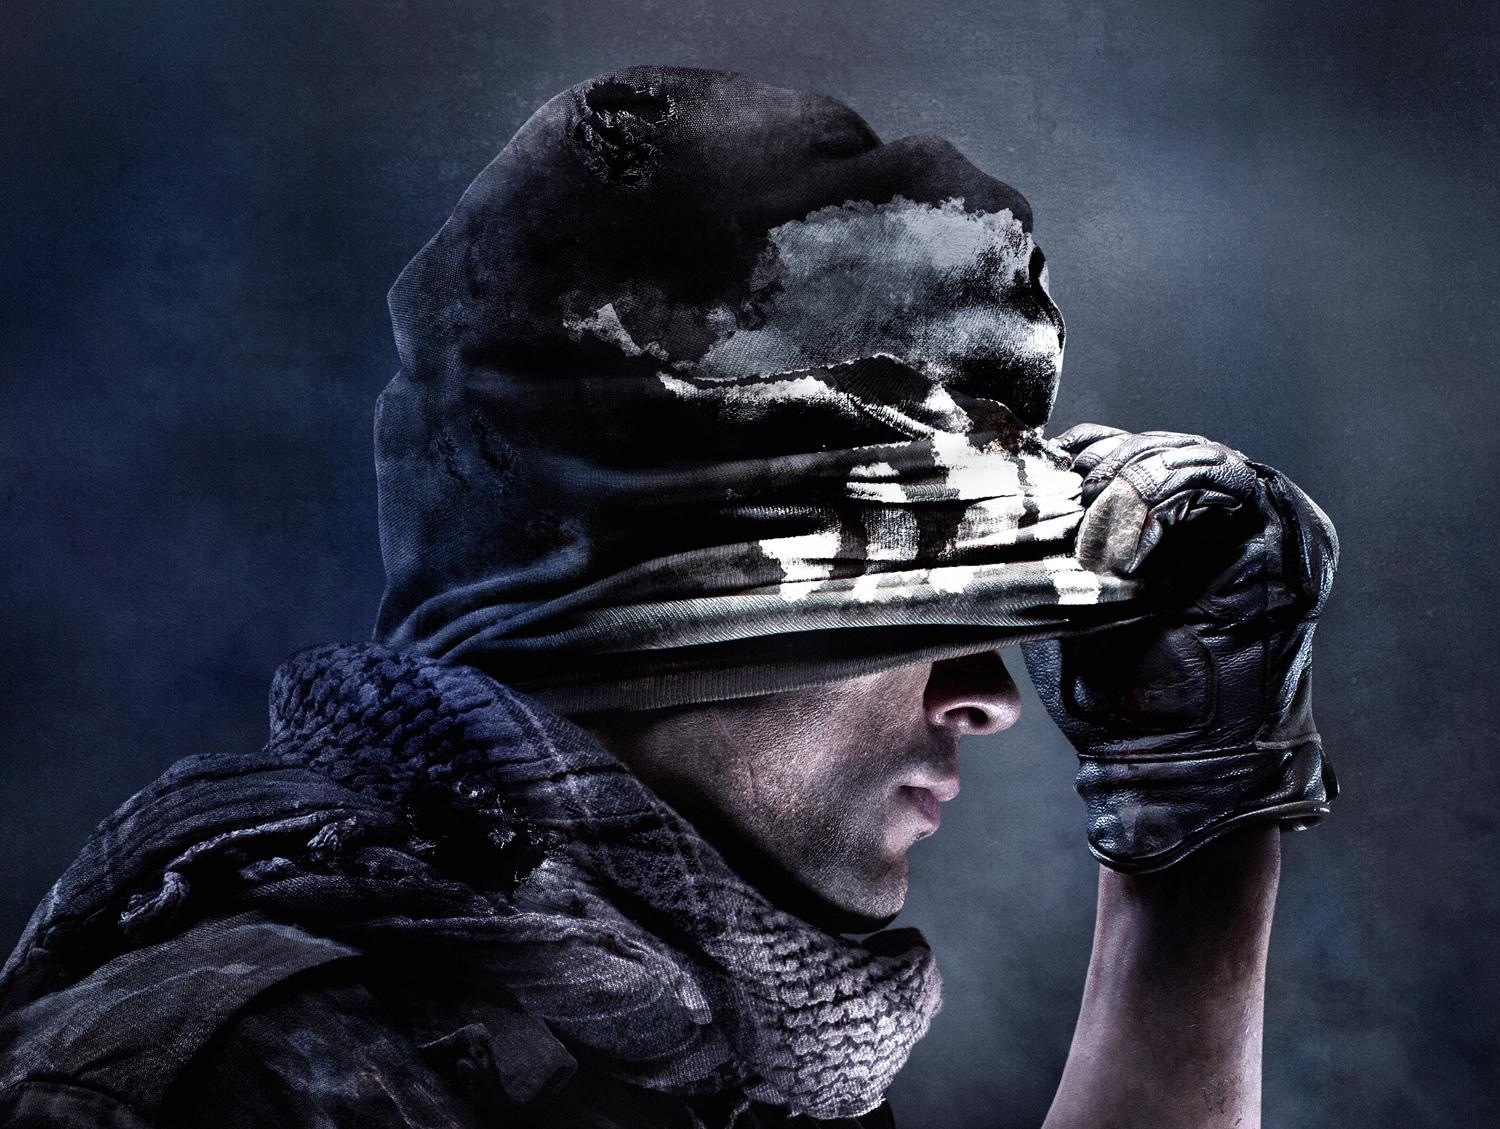 Call-of-Duty-Ghosts-Mask.jpg